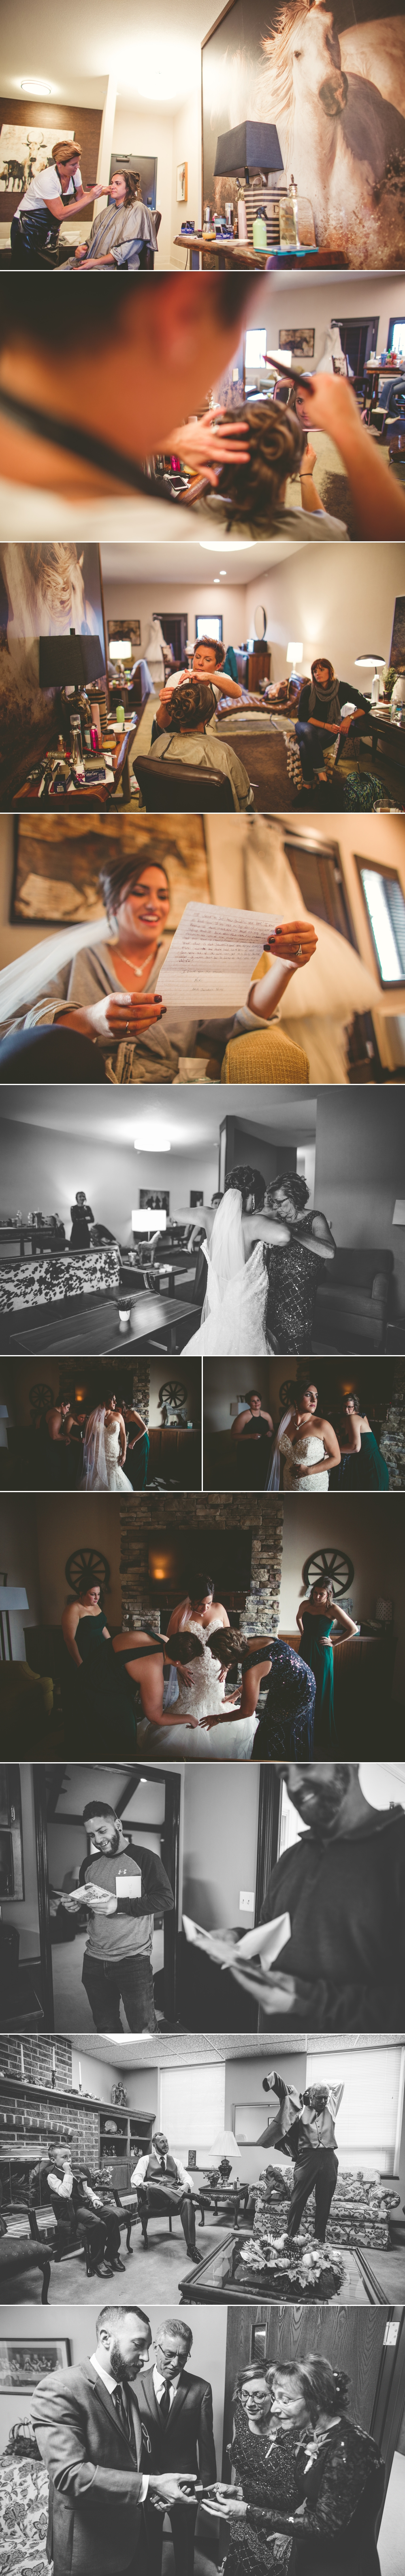 jason_domingues_photography_best_kansas_city_photographer_kc_weddings_aspen_room_stanley_0001.JPG